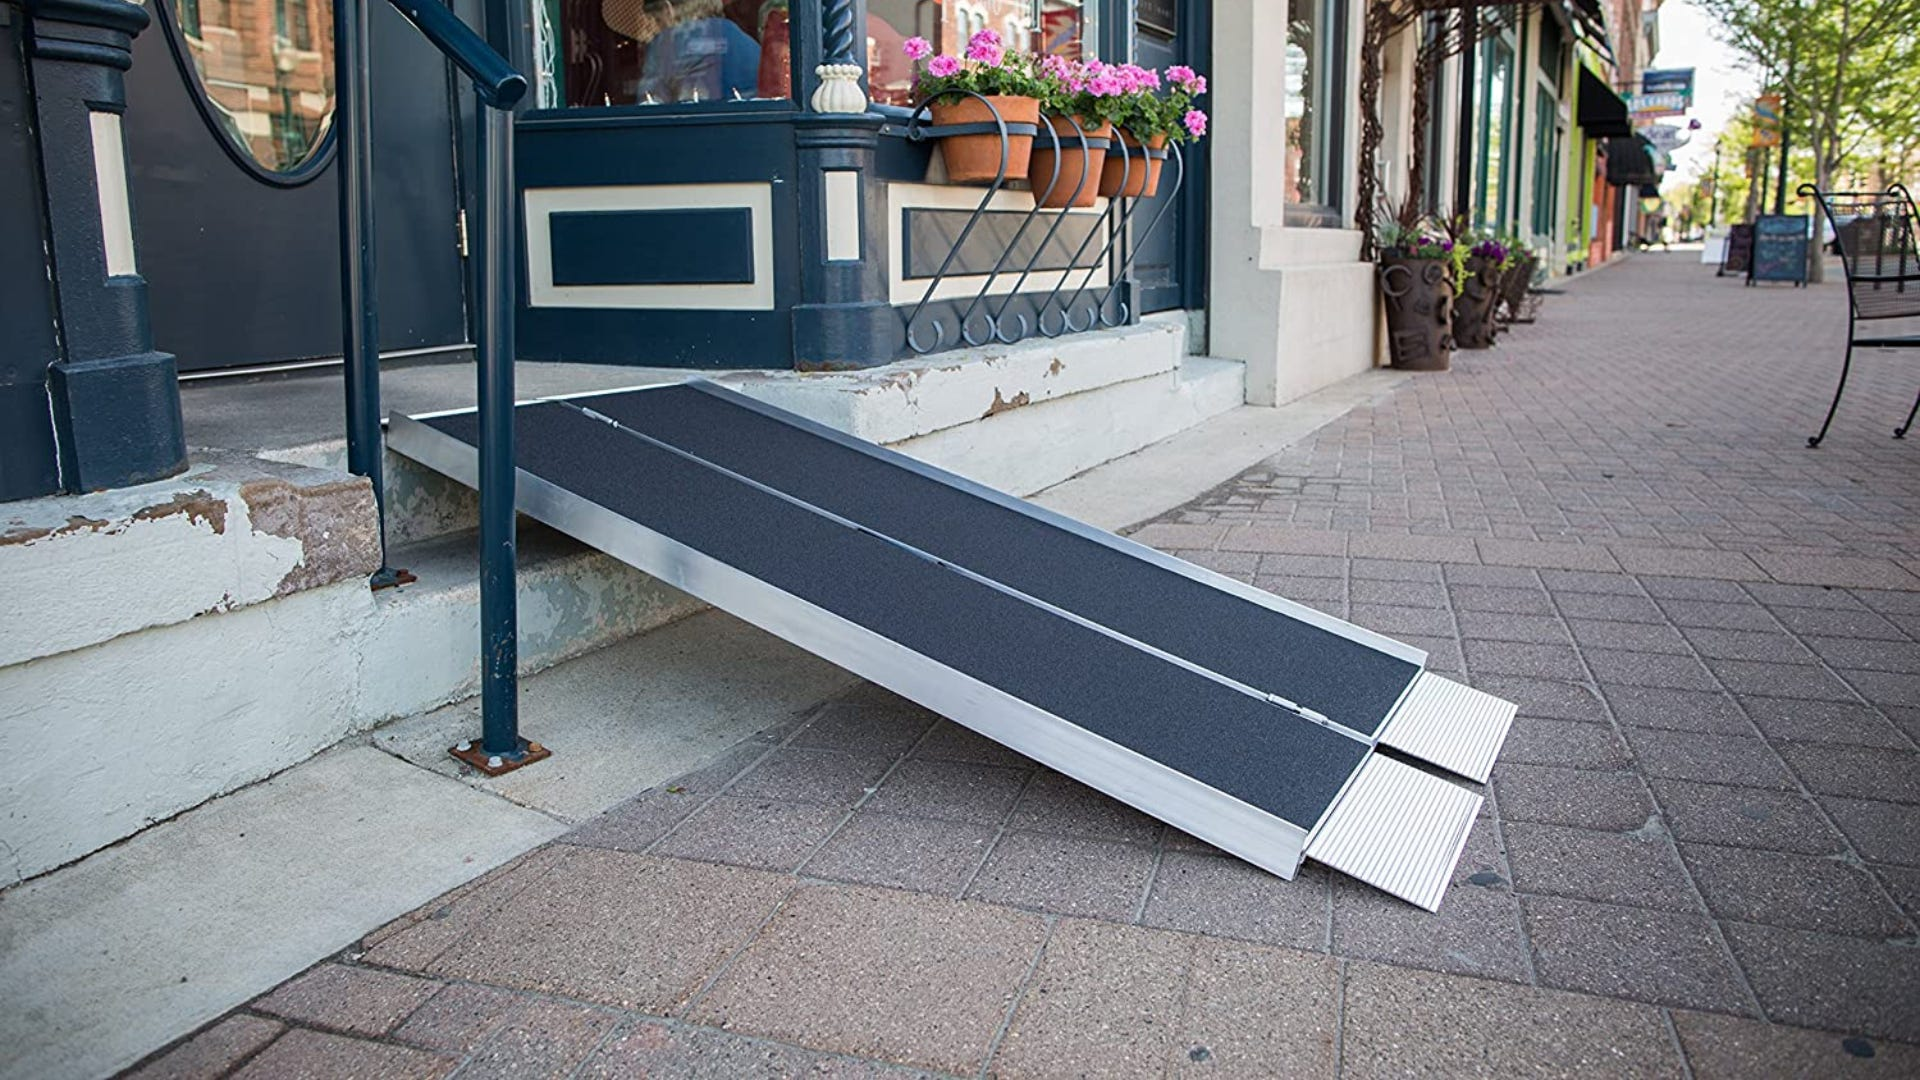 A ramp angled onto outdoor stairs in from of a building.